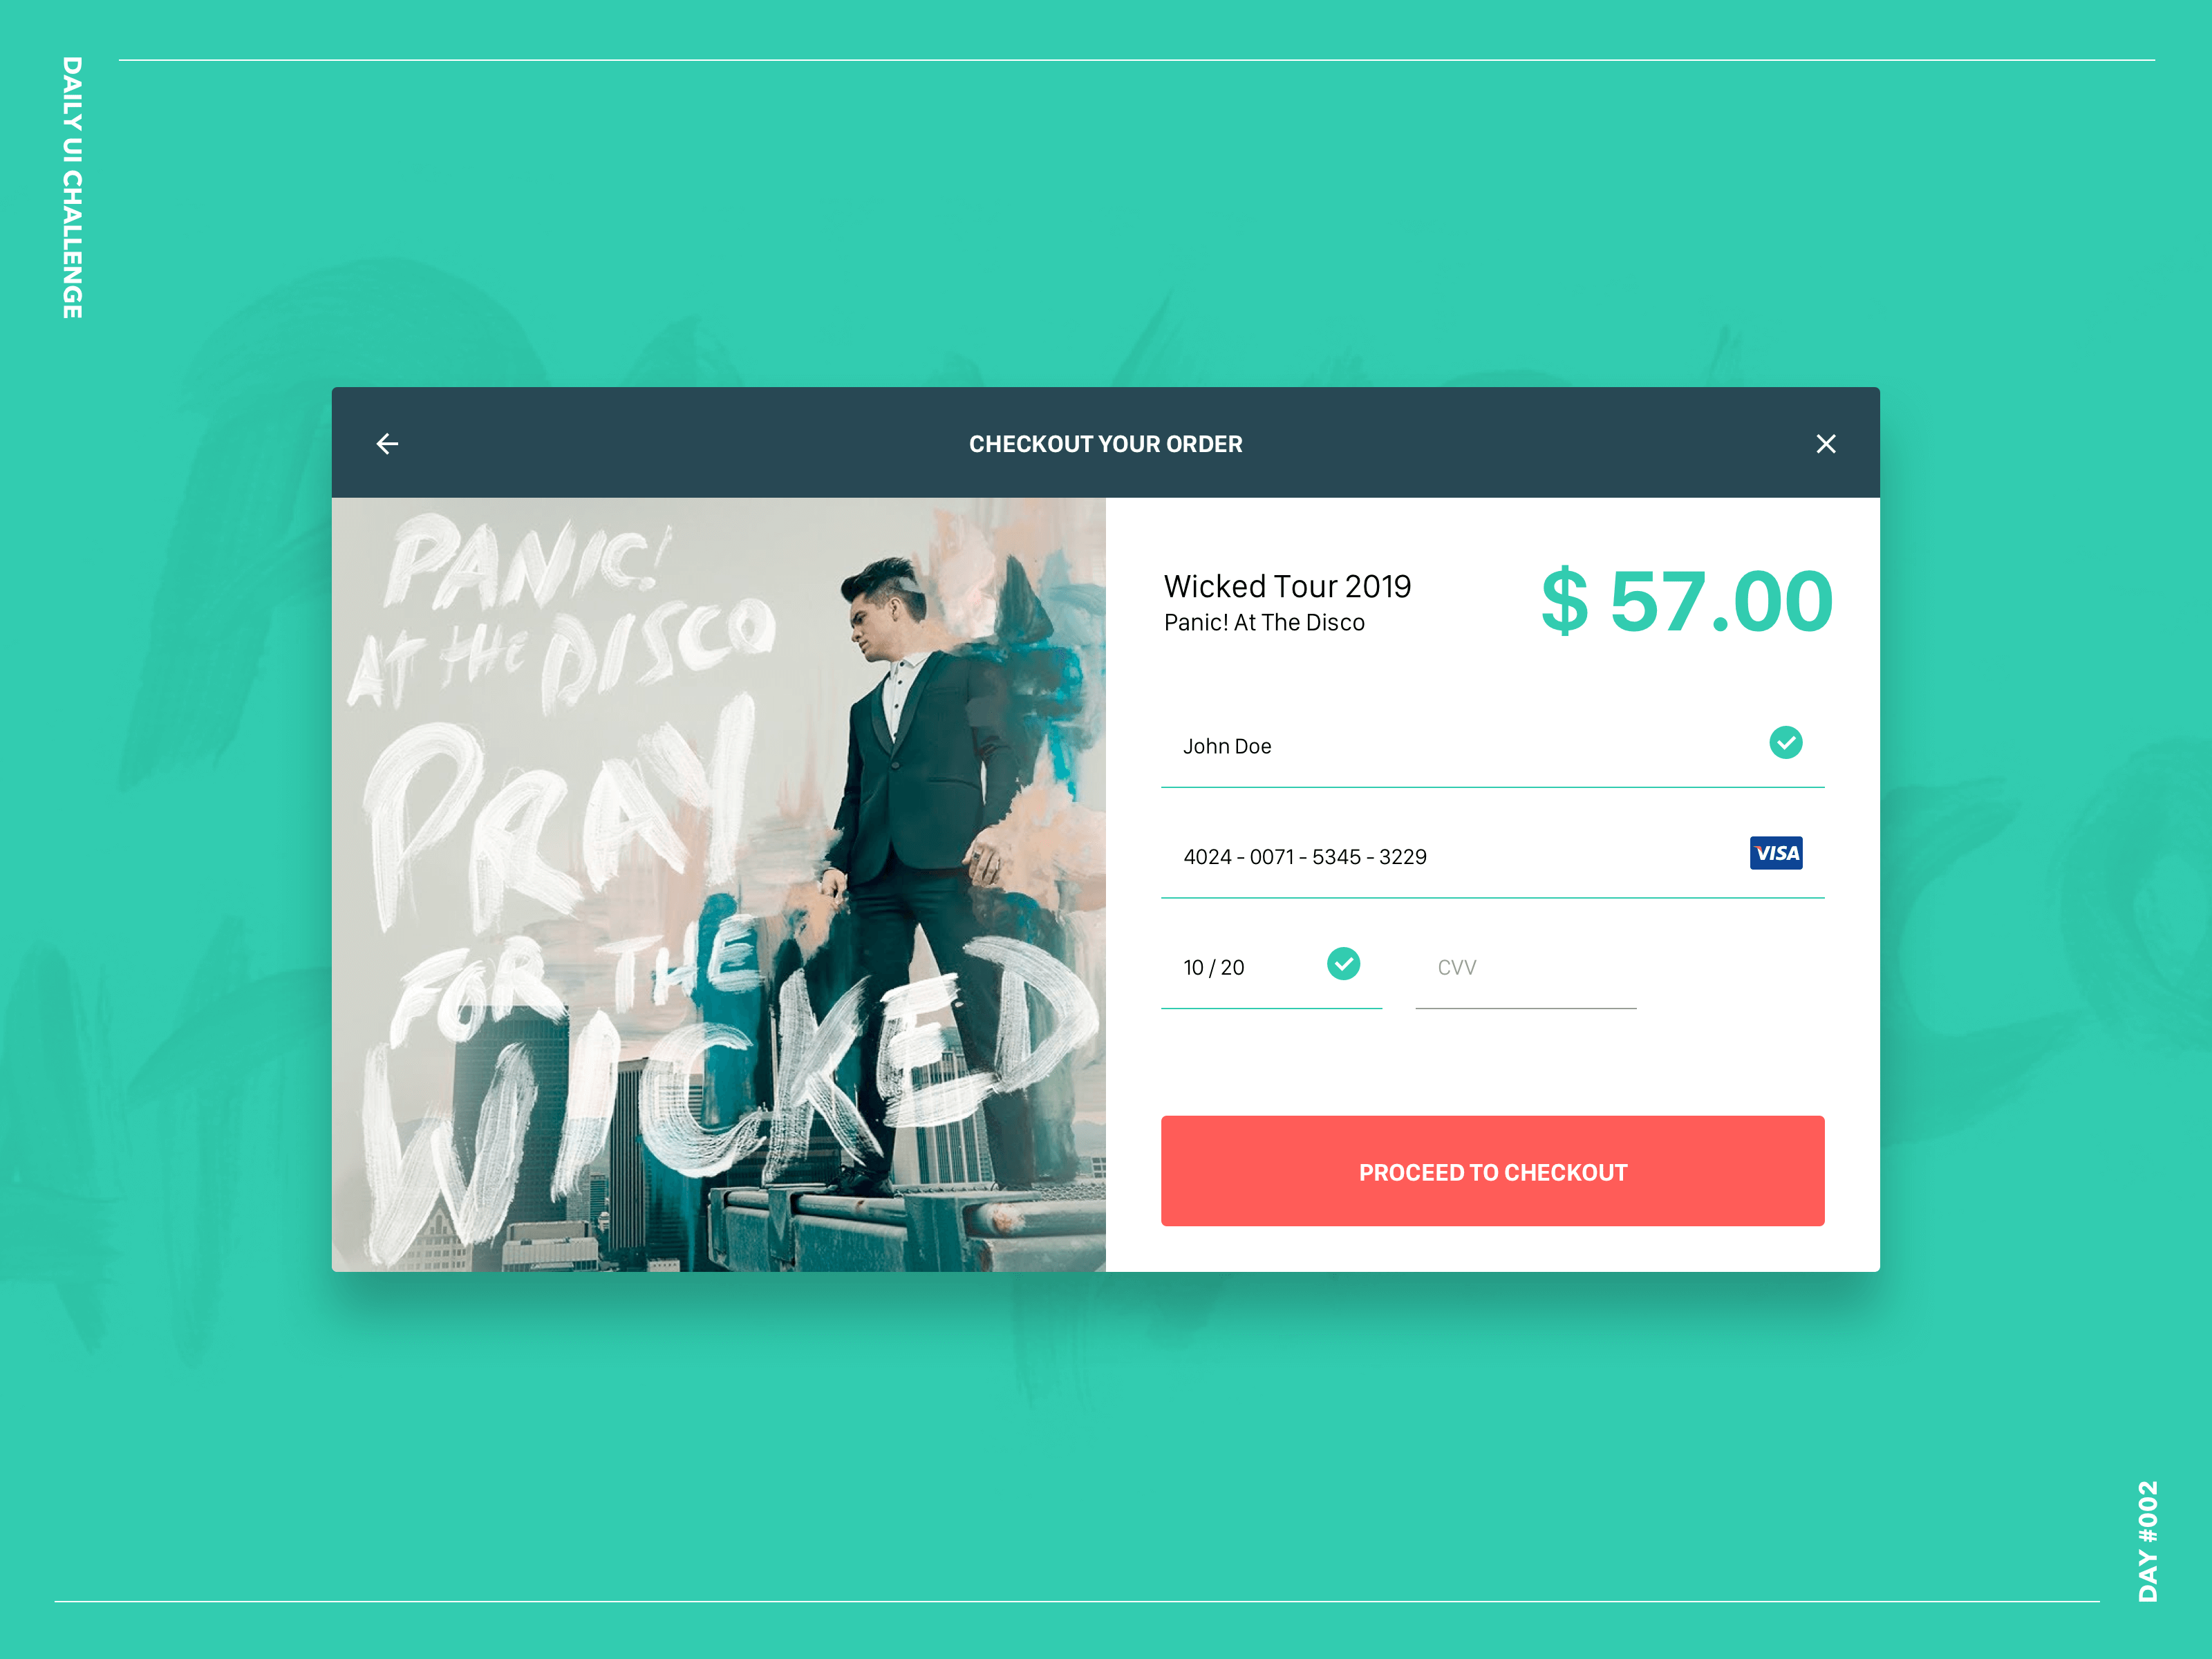 002-DUIC-Check-Out-Dribbble